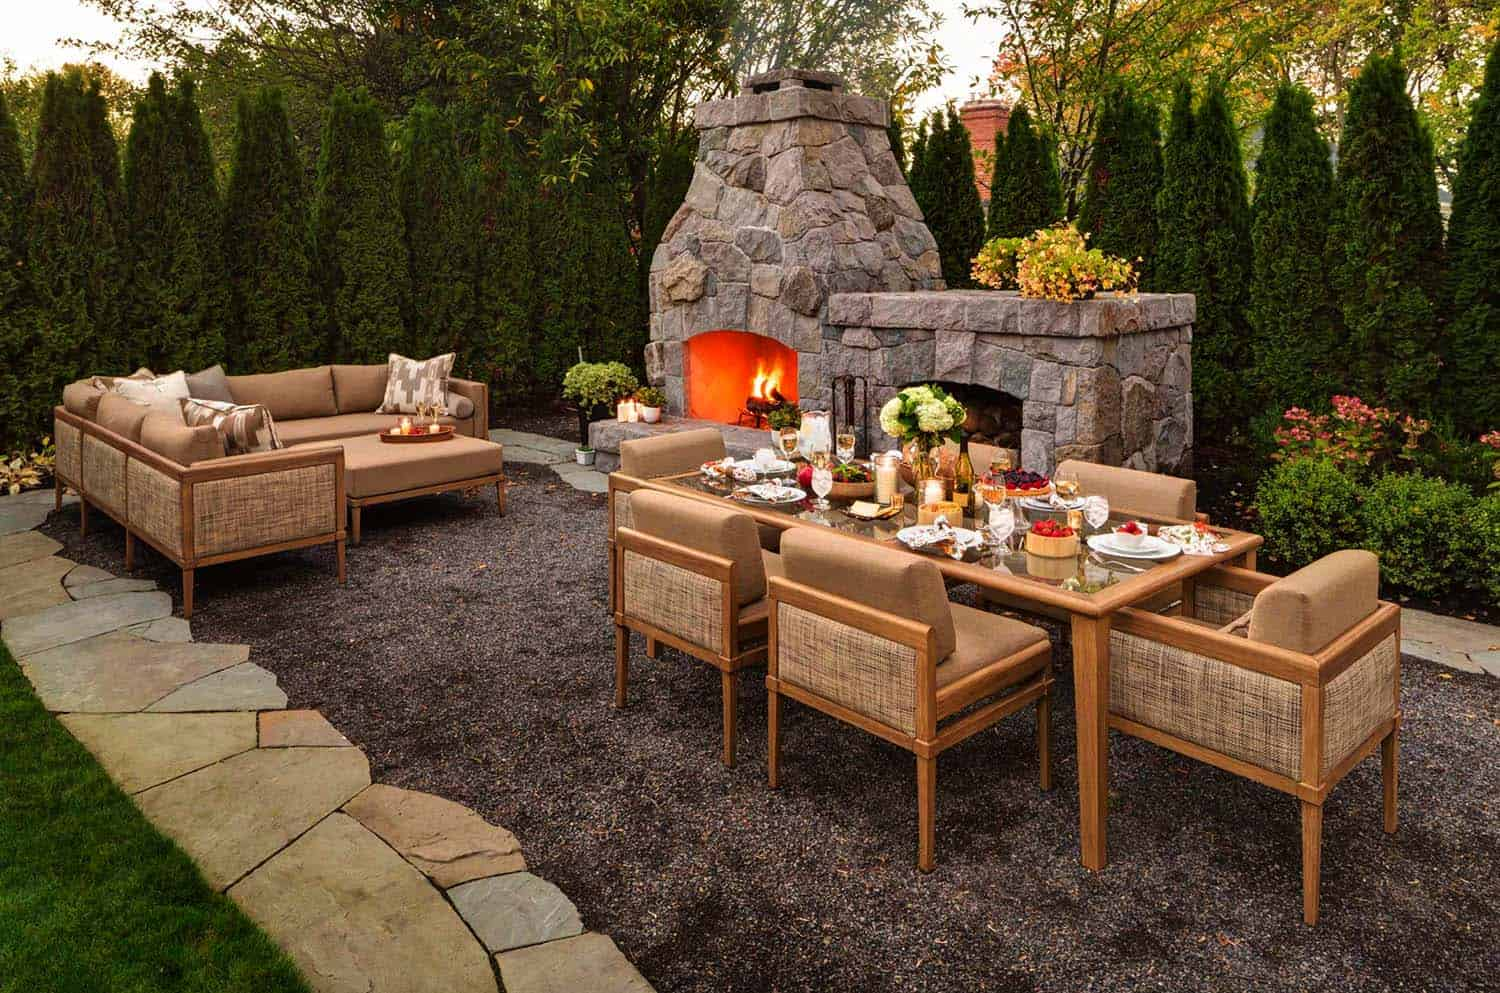 25+ Fabulous outdoor patio ideas to get ready for spring ... on Small Outdoor Covered Patio Ideas id=79794